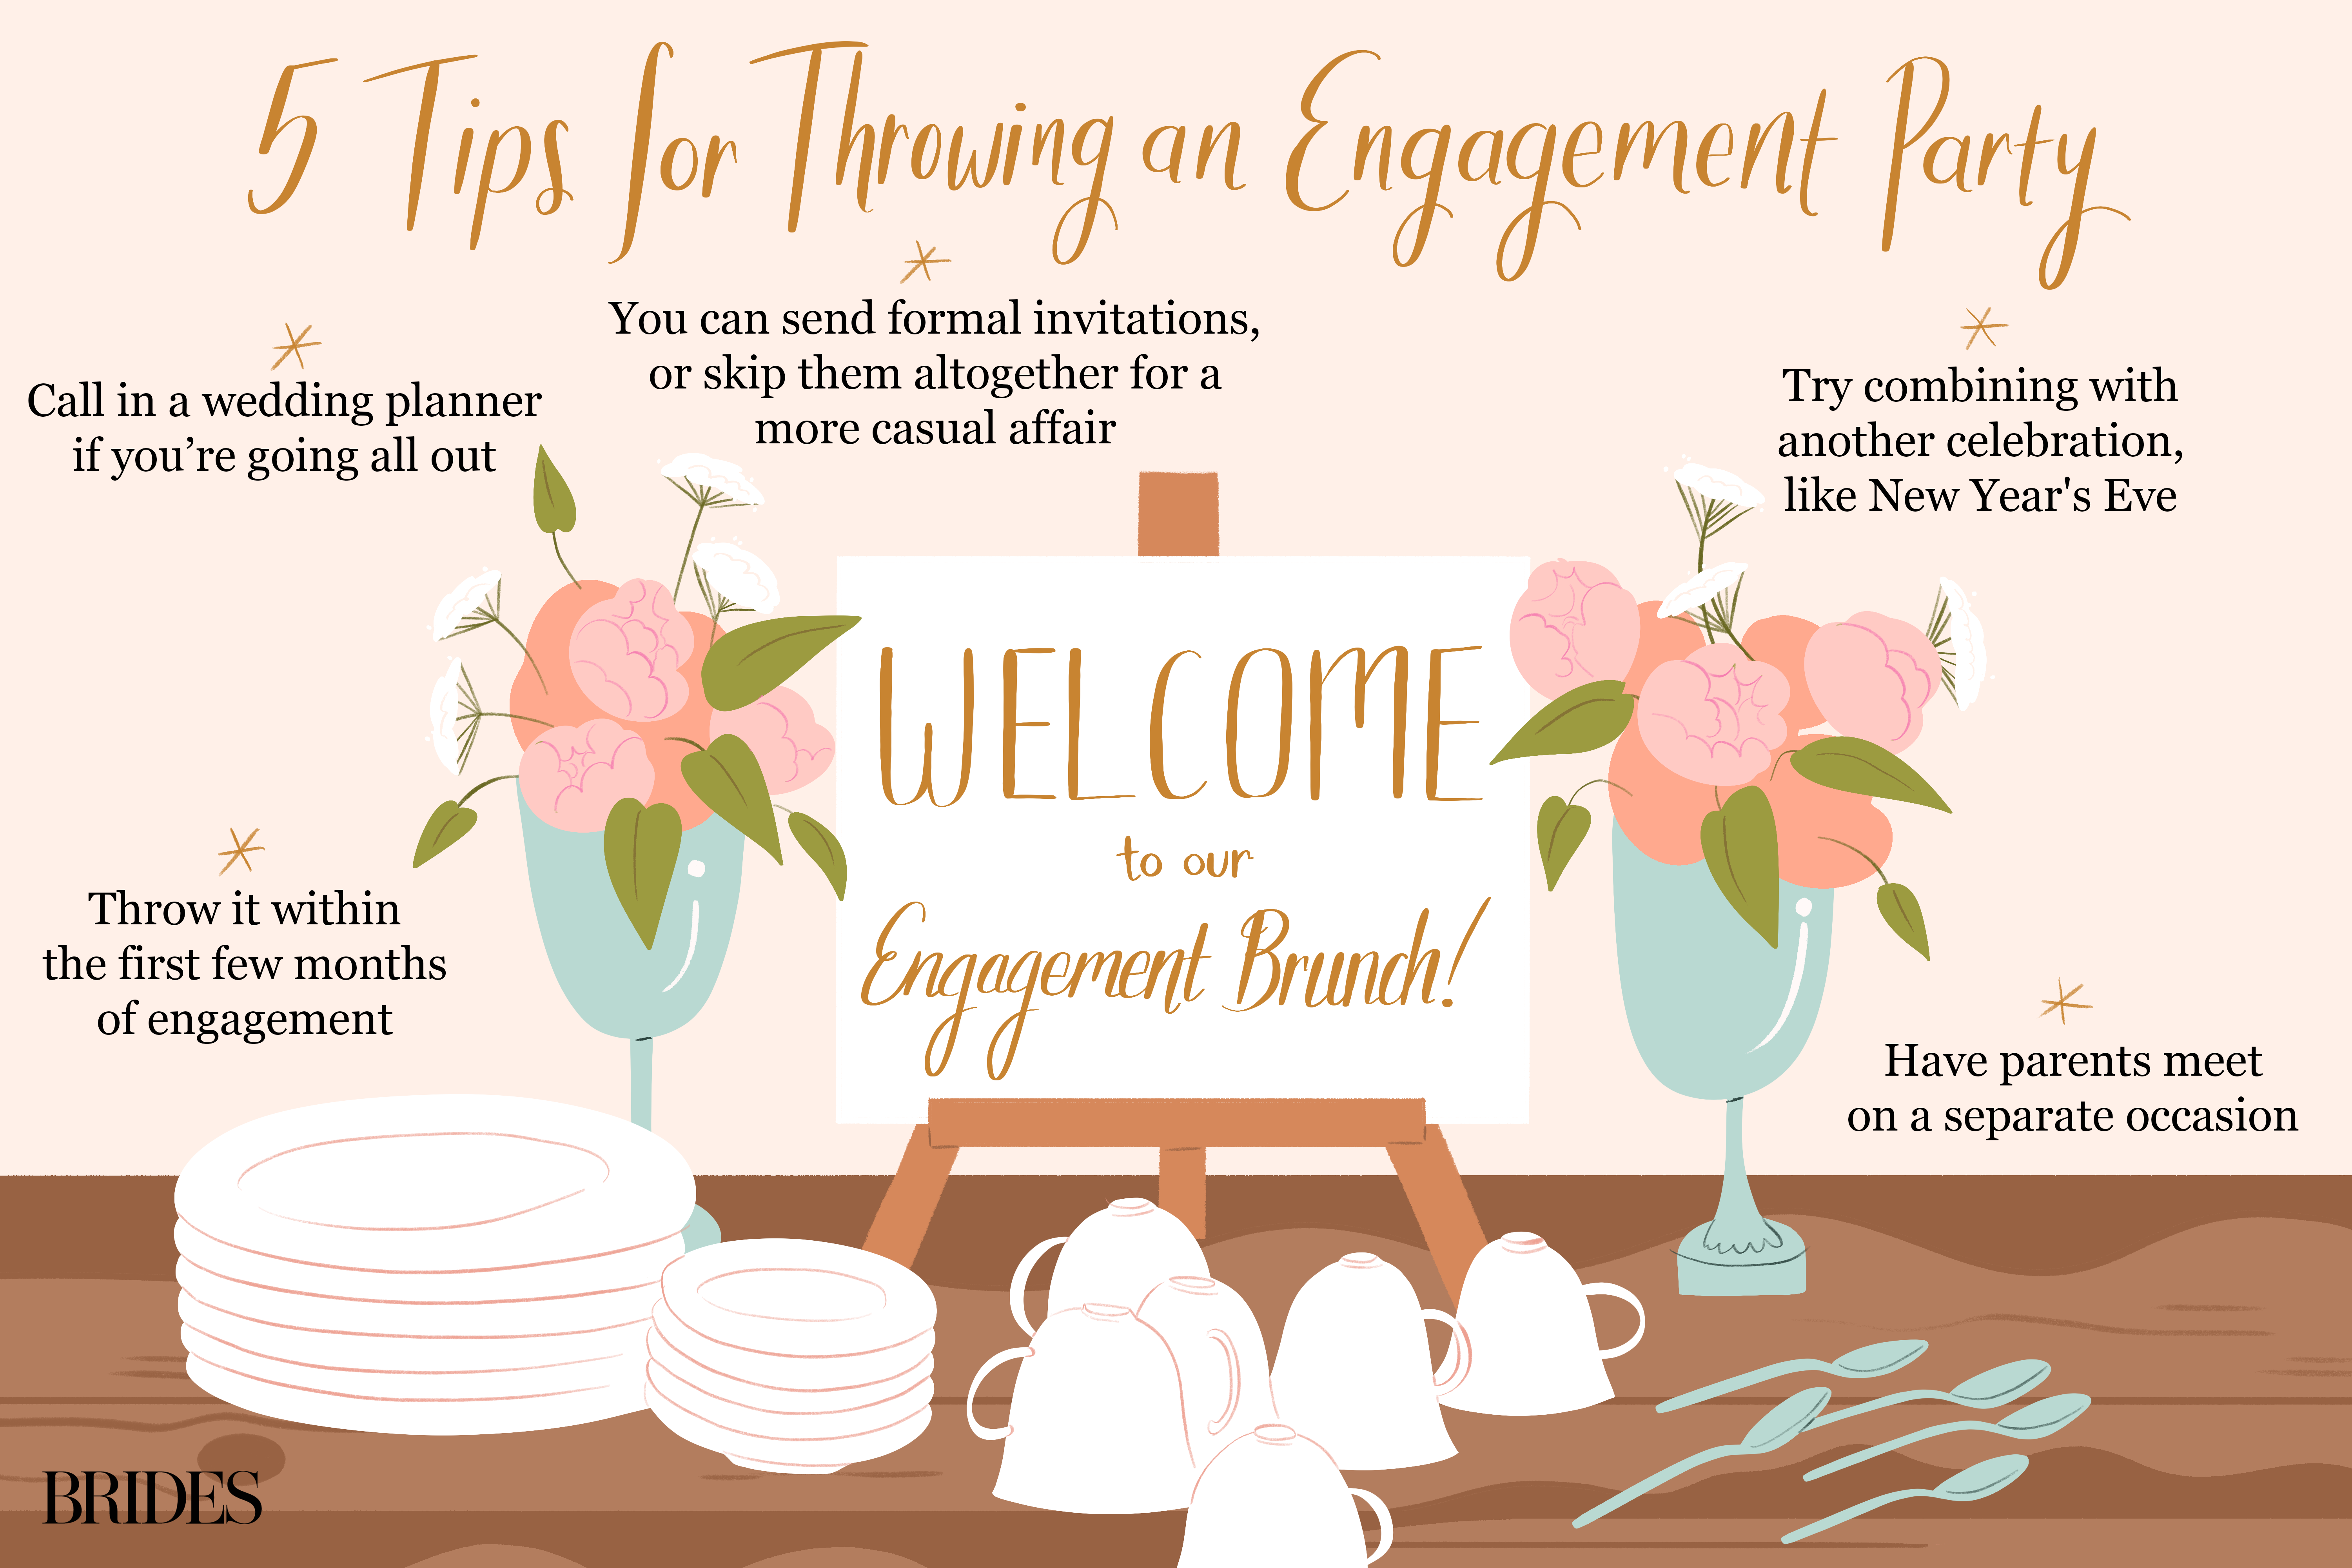 5 Tips for Throwing an Engagement Party